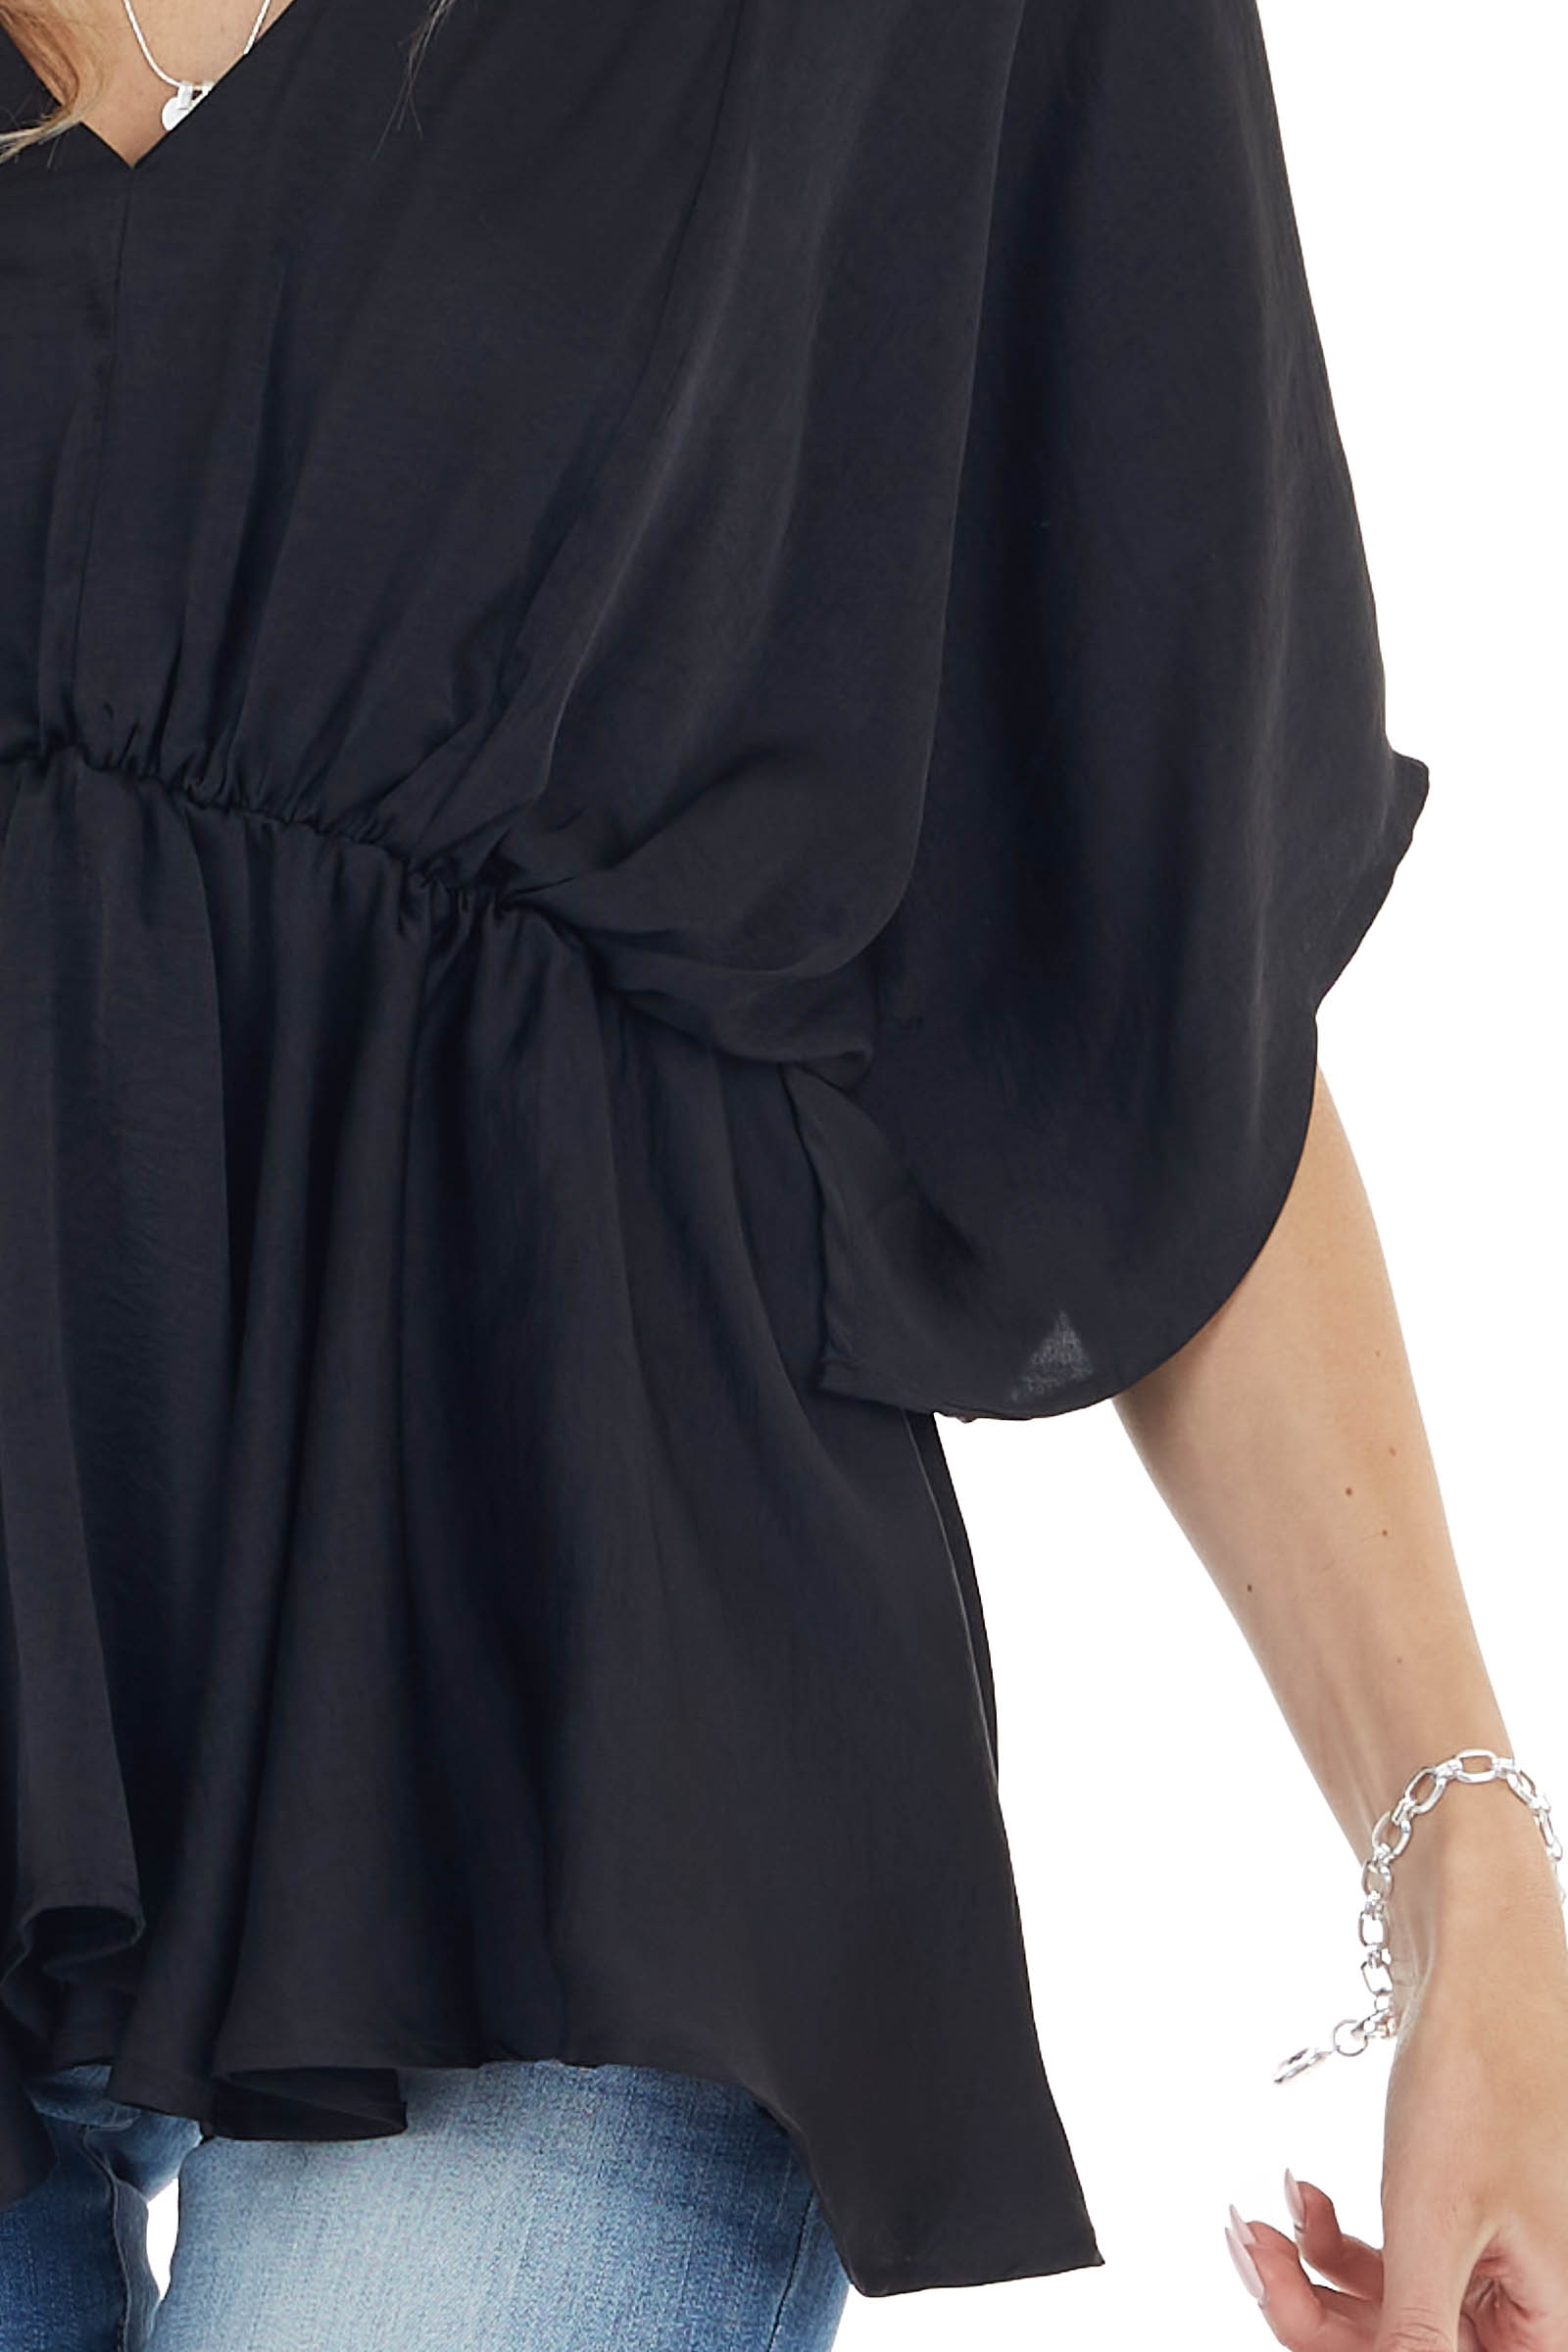 Black Flowy Drop Waist Blouse with Short Loose Sleeves